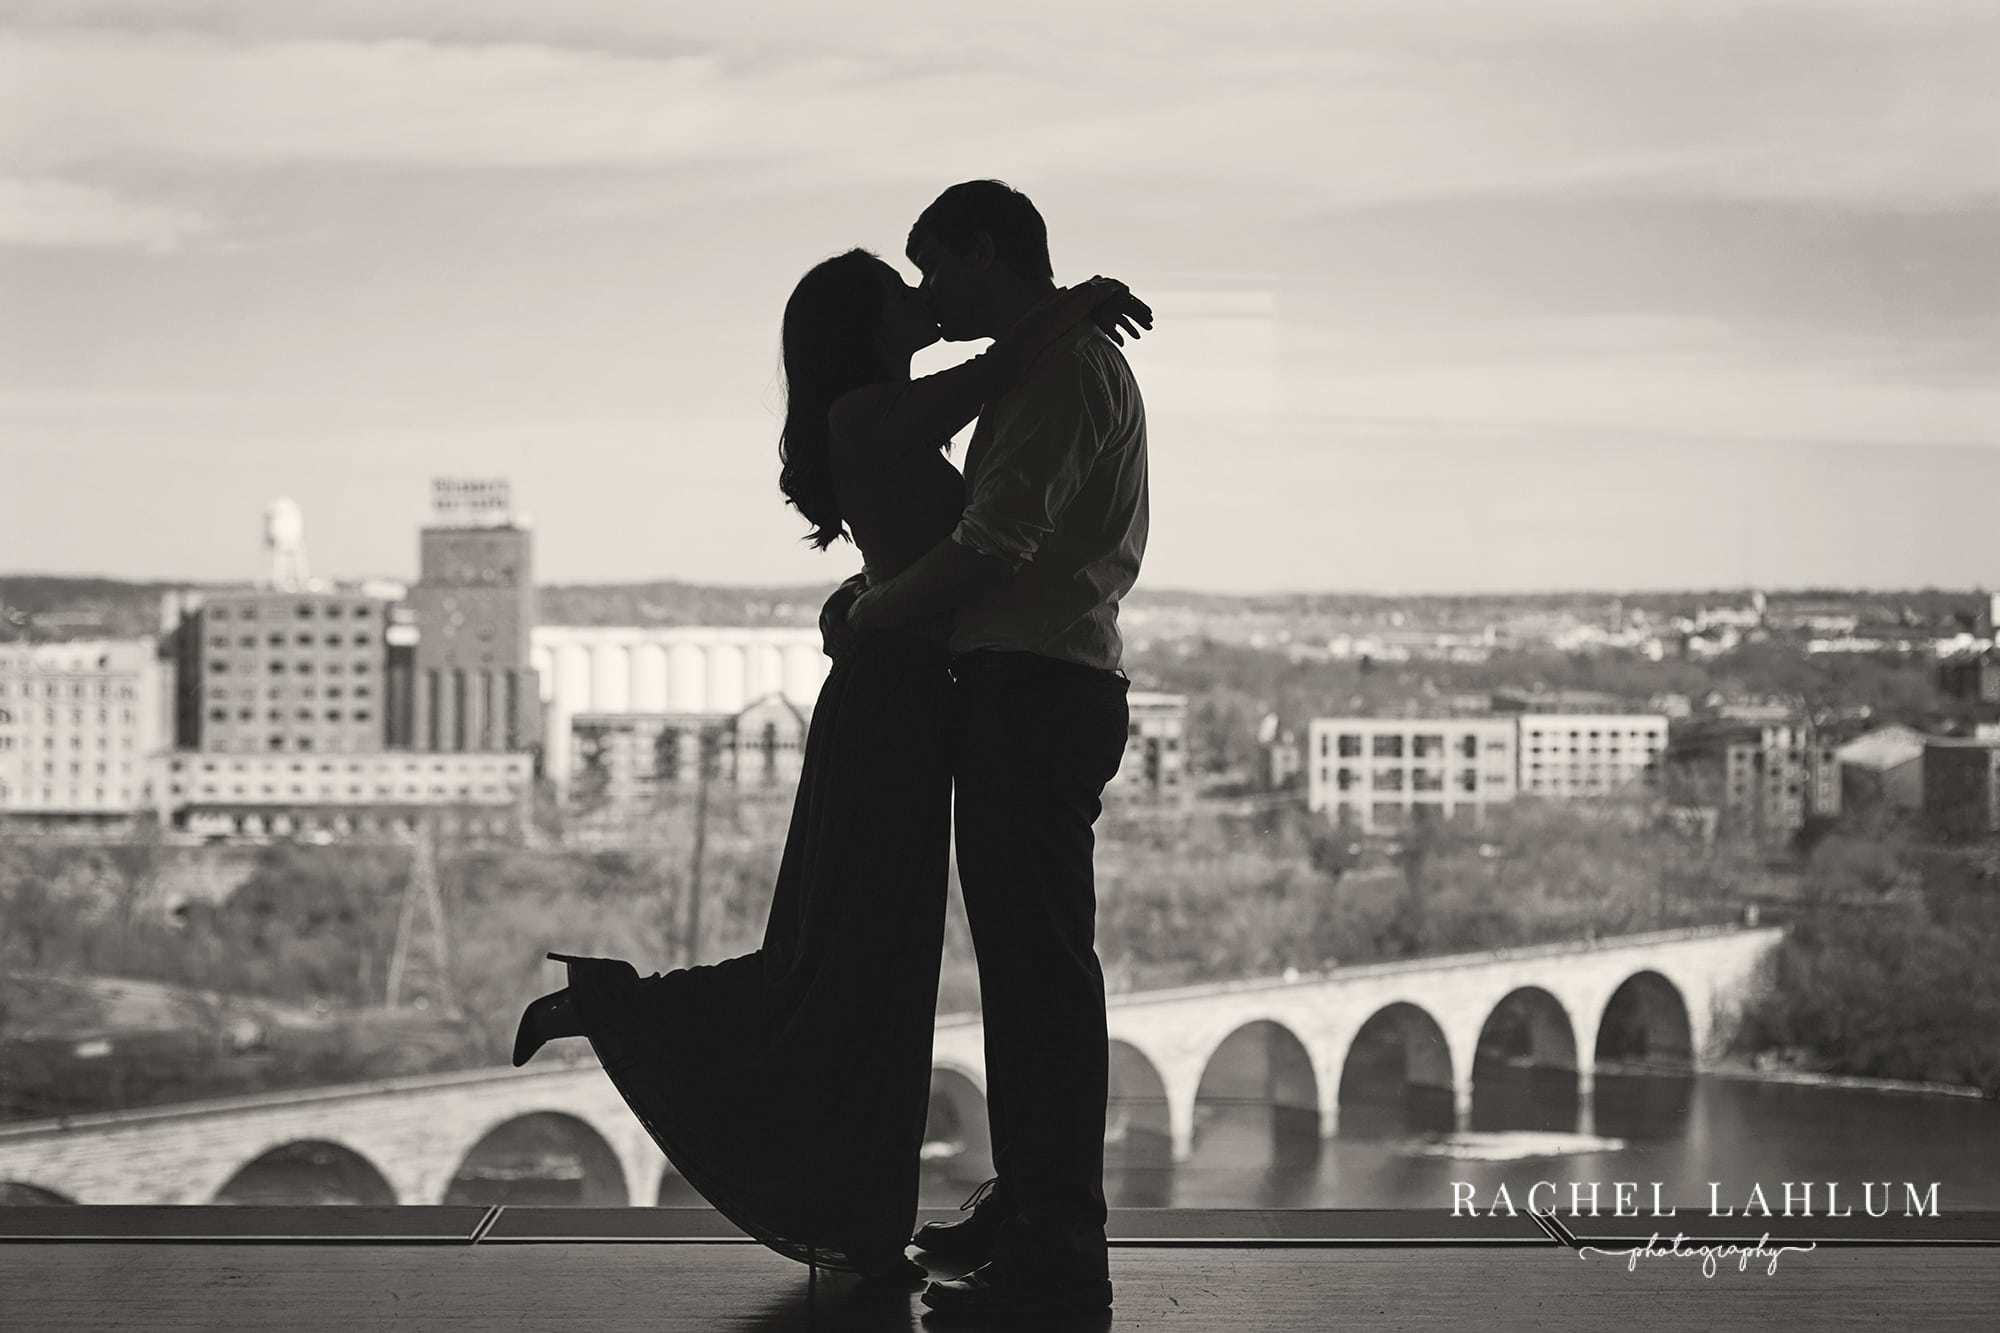 Couple kissing while silhouetted against the stone arch bridge in Minneapolis, MN. Taken from the Guthrie Theater in Downtown Minneapolis.